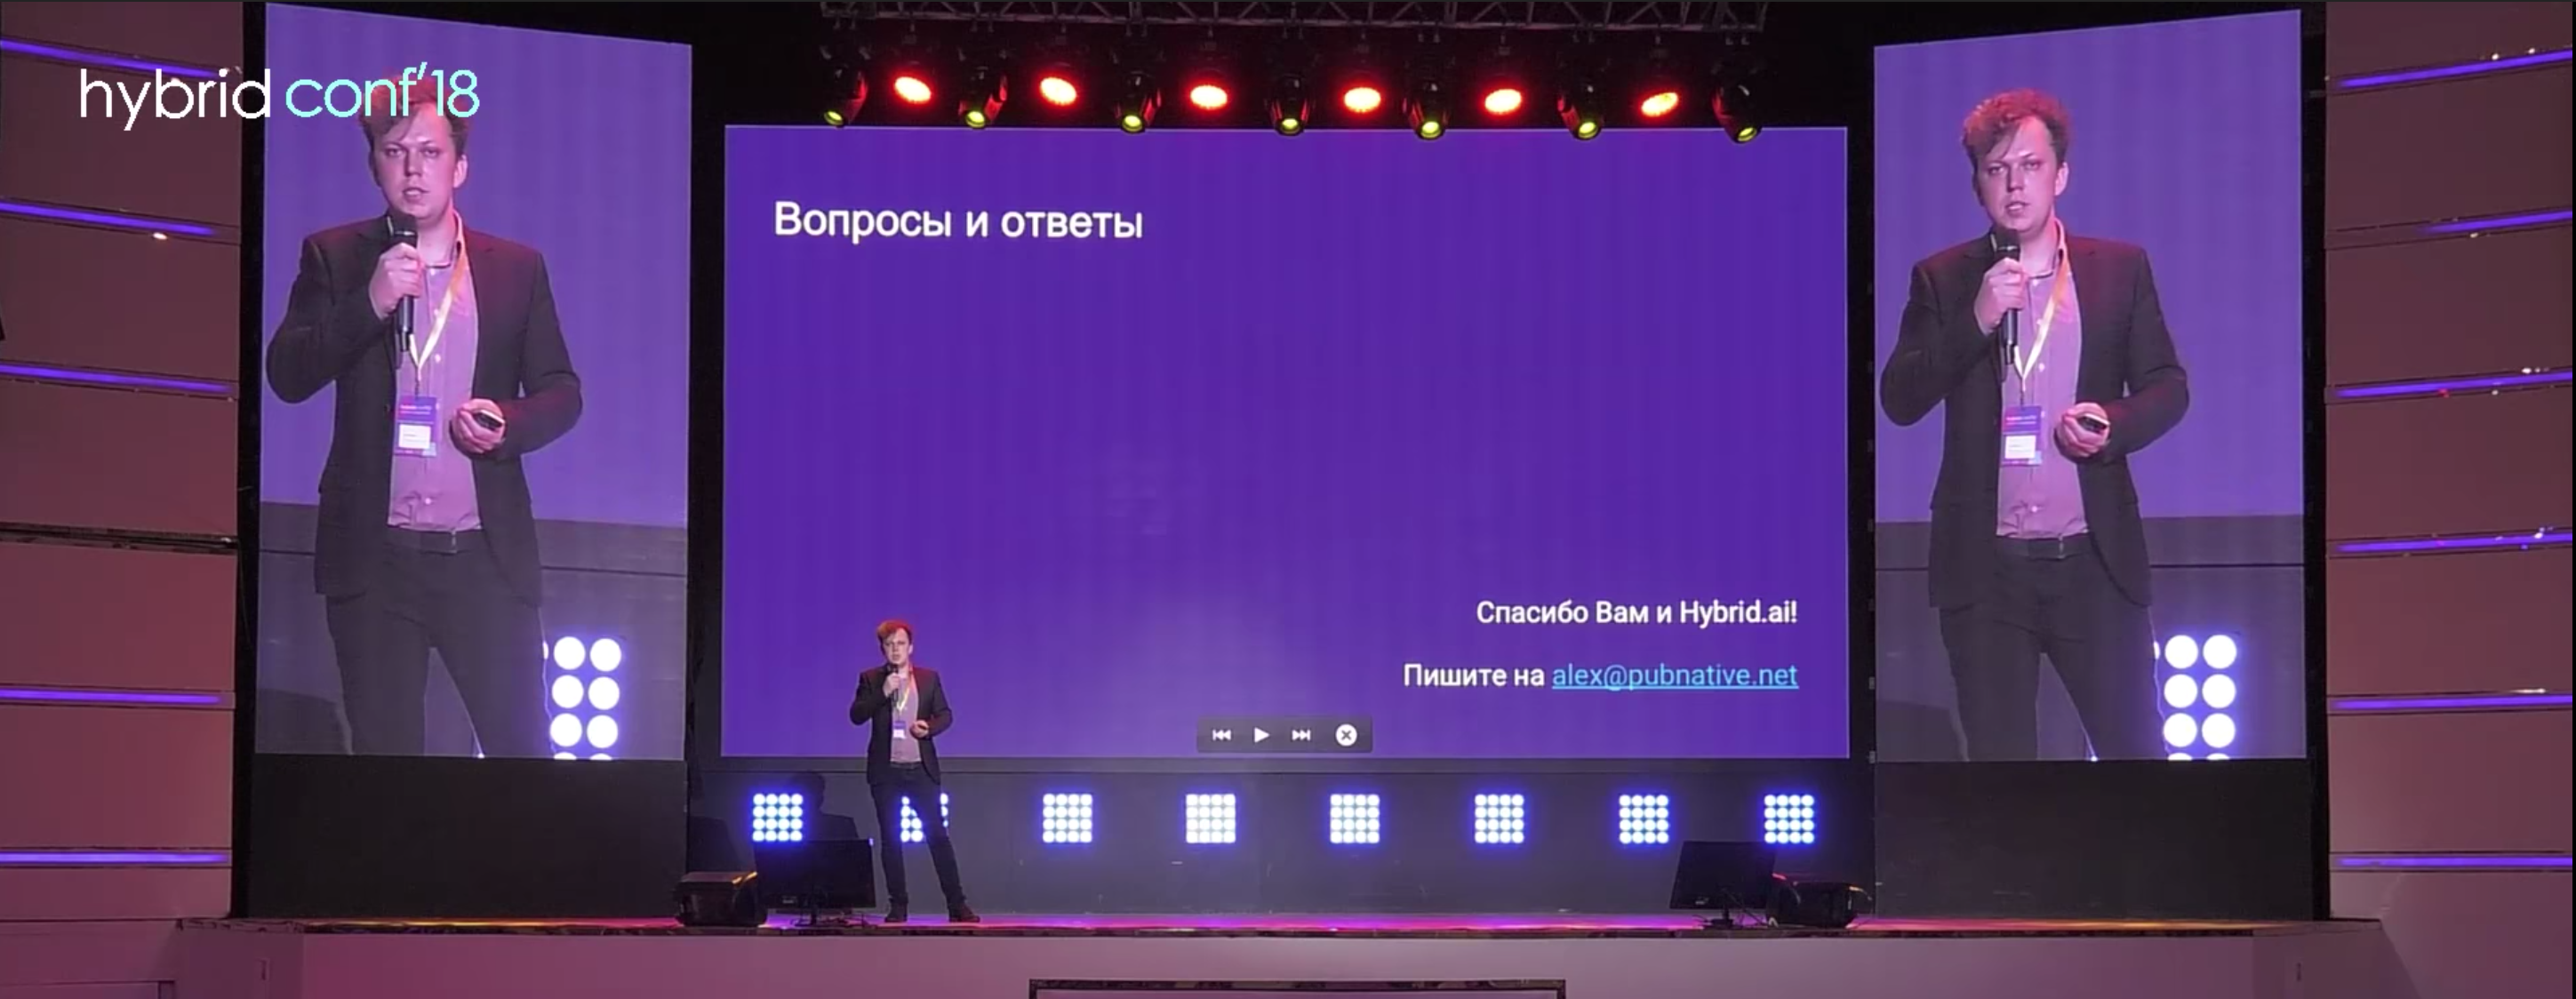 Lead Product Manager Alexander Savelyev at Hybrid Conf'18